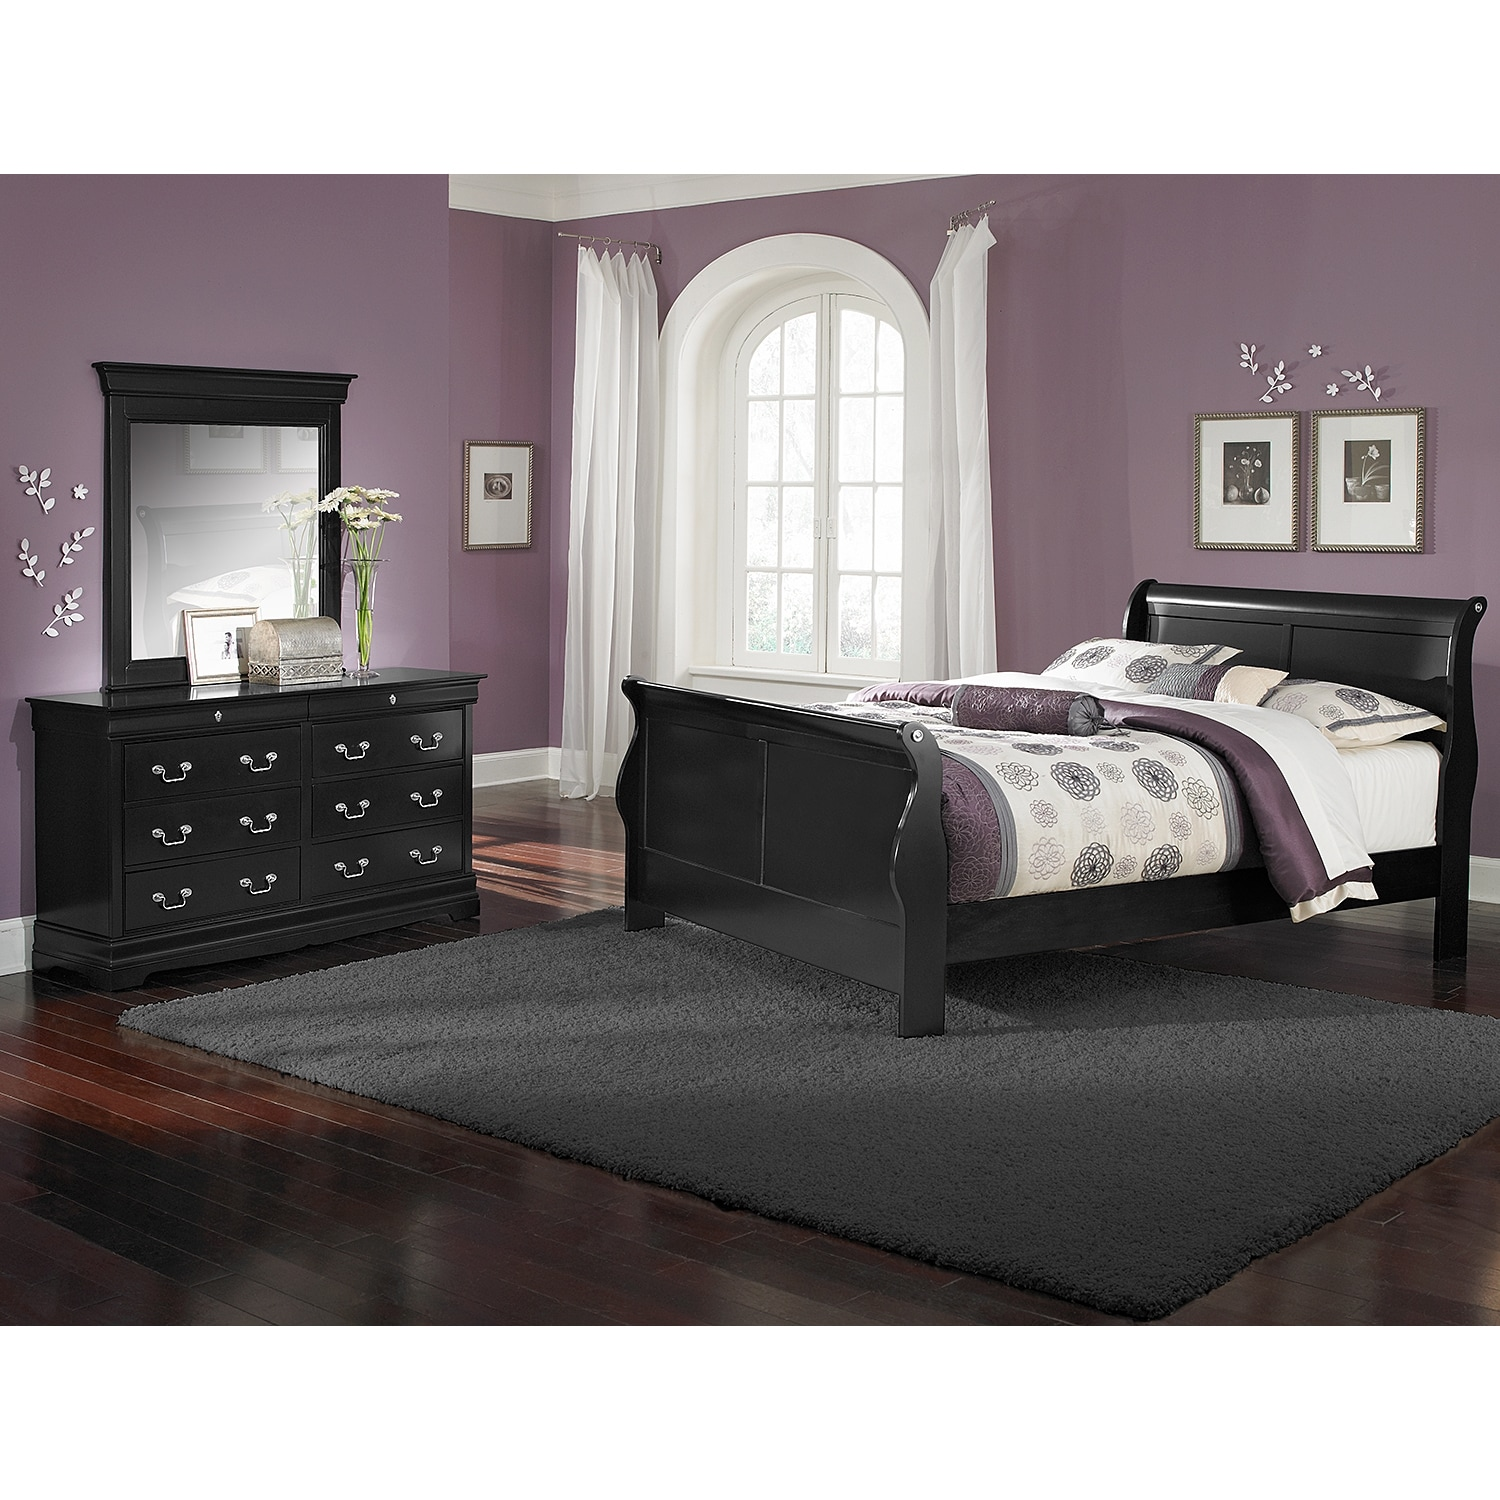 Neo Classic Youth 5-Piece Twin Bedroom Set - Black